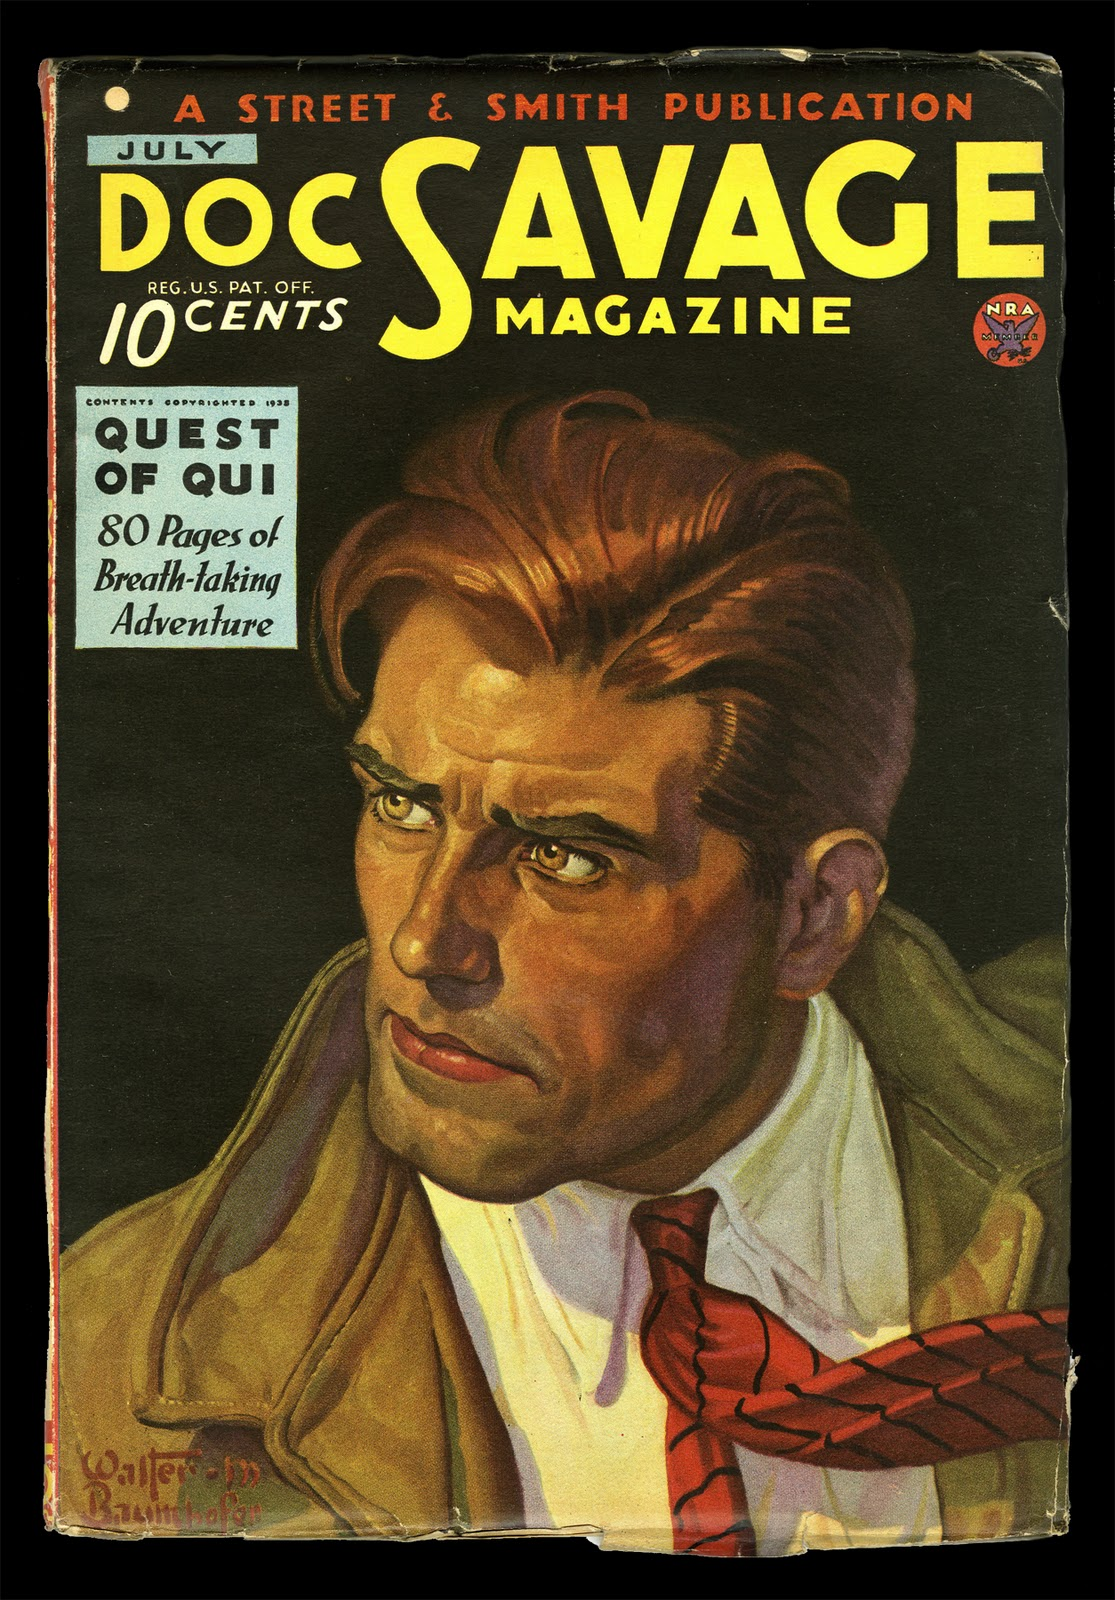 DOC SAVAGE #2, The Thousand-Headed Man by Kenneth Robeson